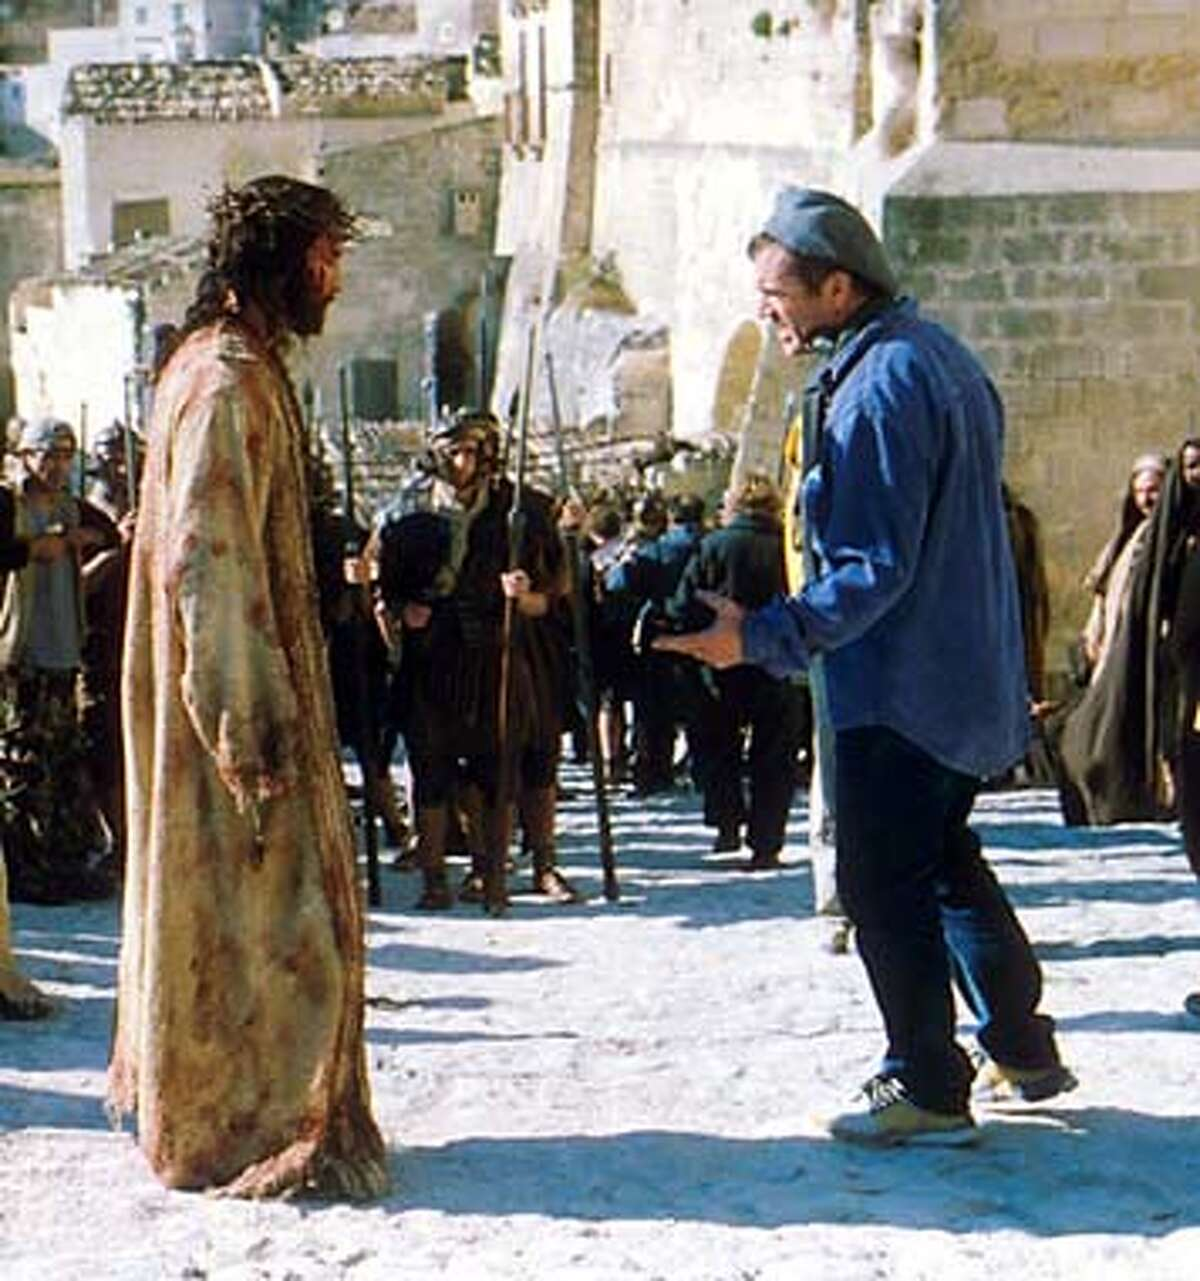 (NYT8) UNDATED -- Oct. 23, 2003 -- Mel Gibson, right, directs Jim Caviezel during filming of